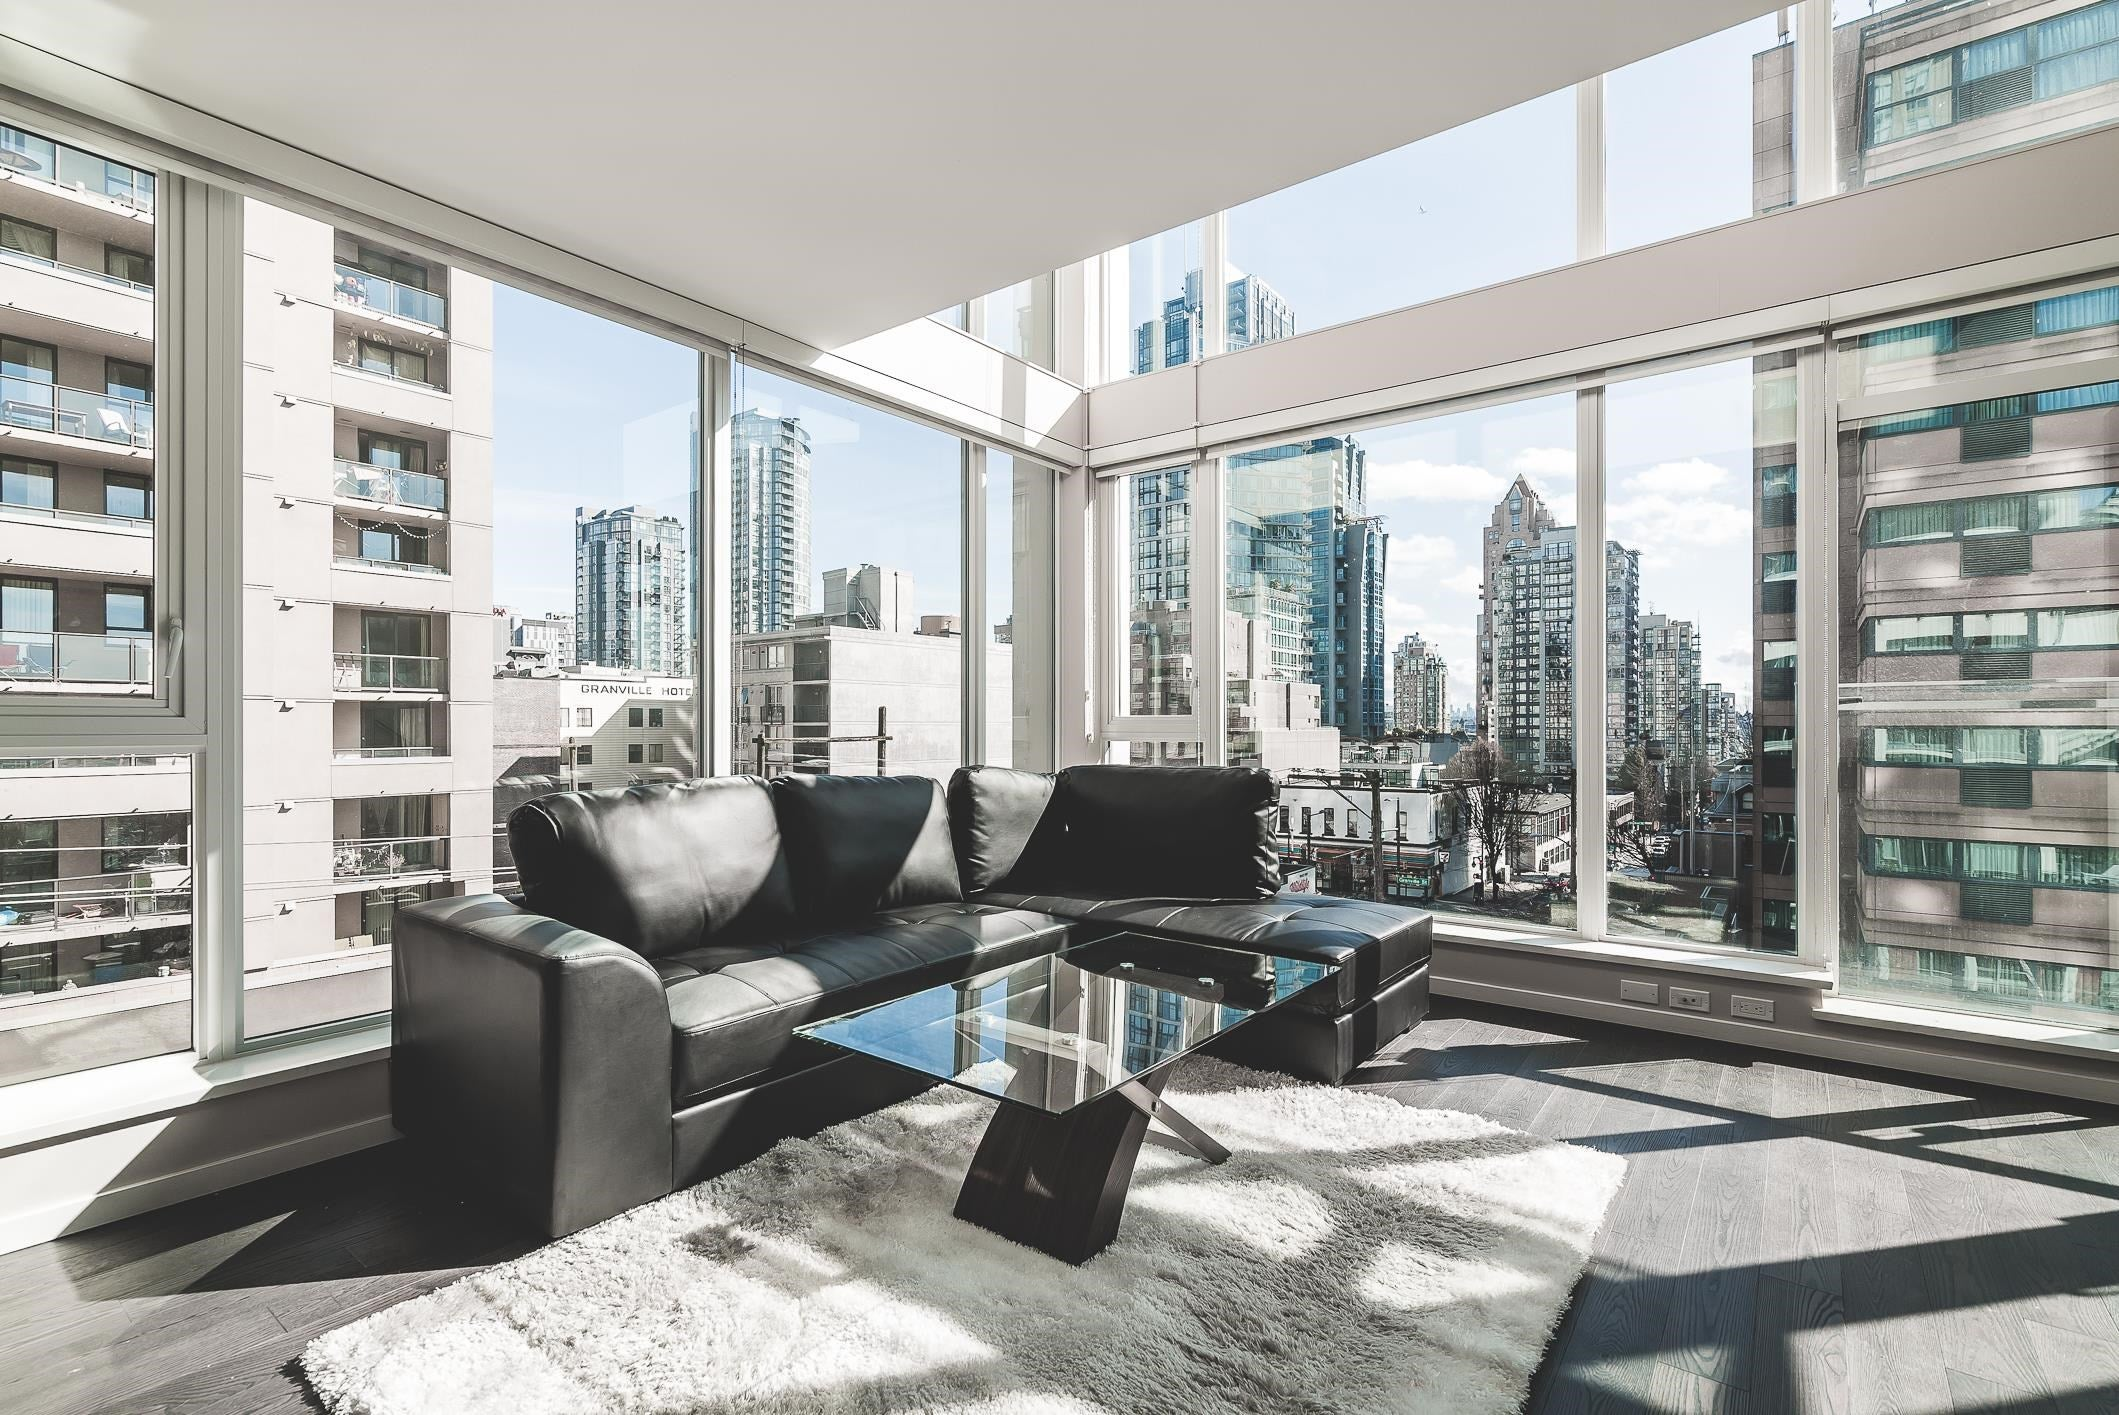 606 1351 CONTINENTAL STREET - Downtown VW Apartment/Condo for sale, 2 Bedrooms (R2623948) - #1